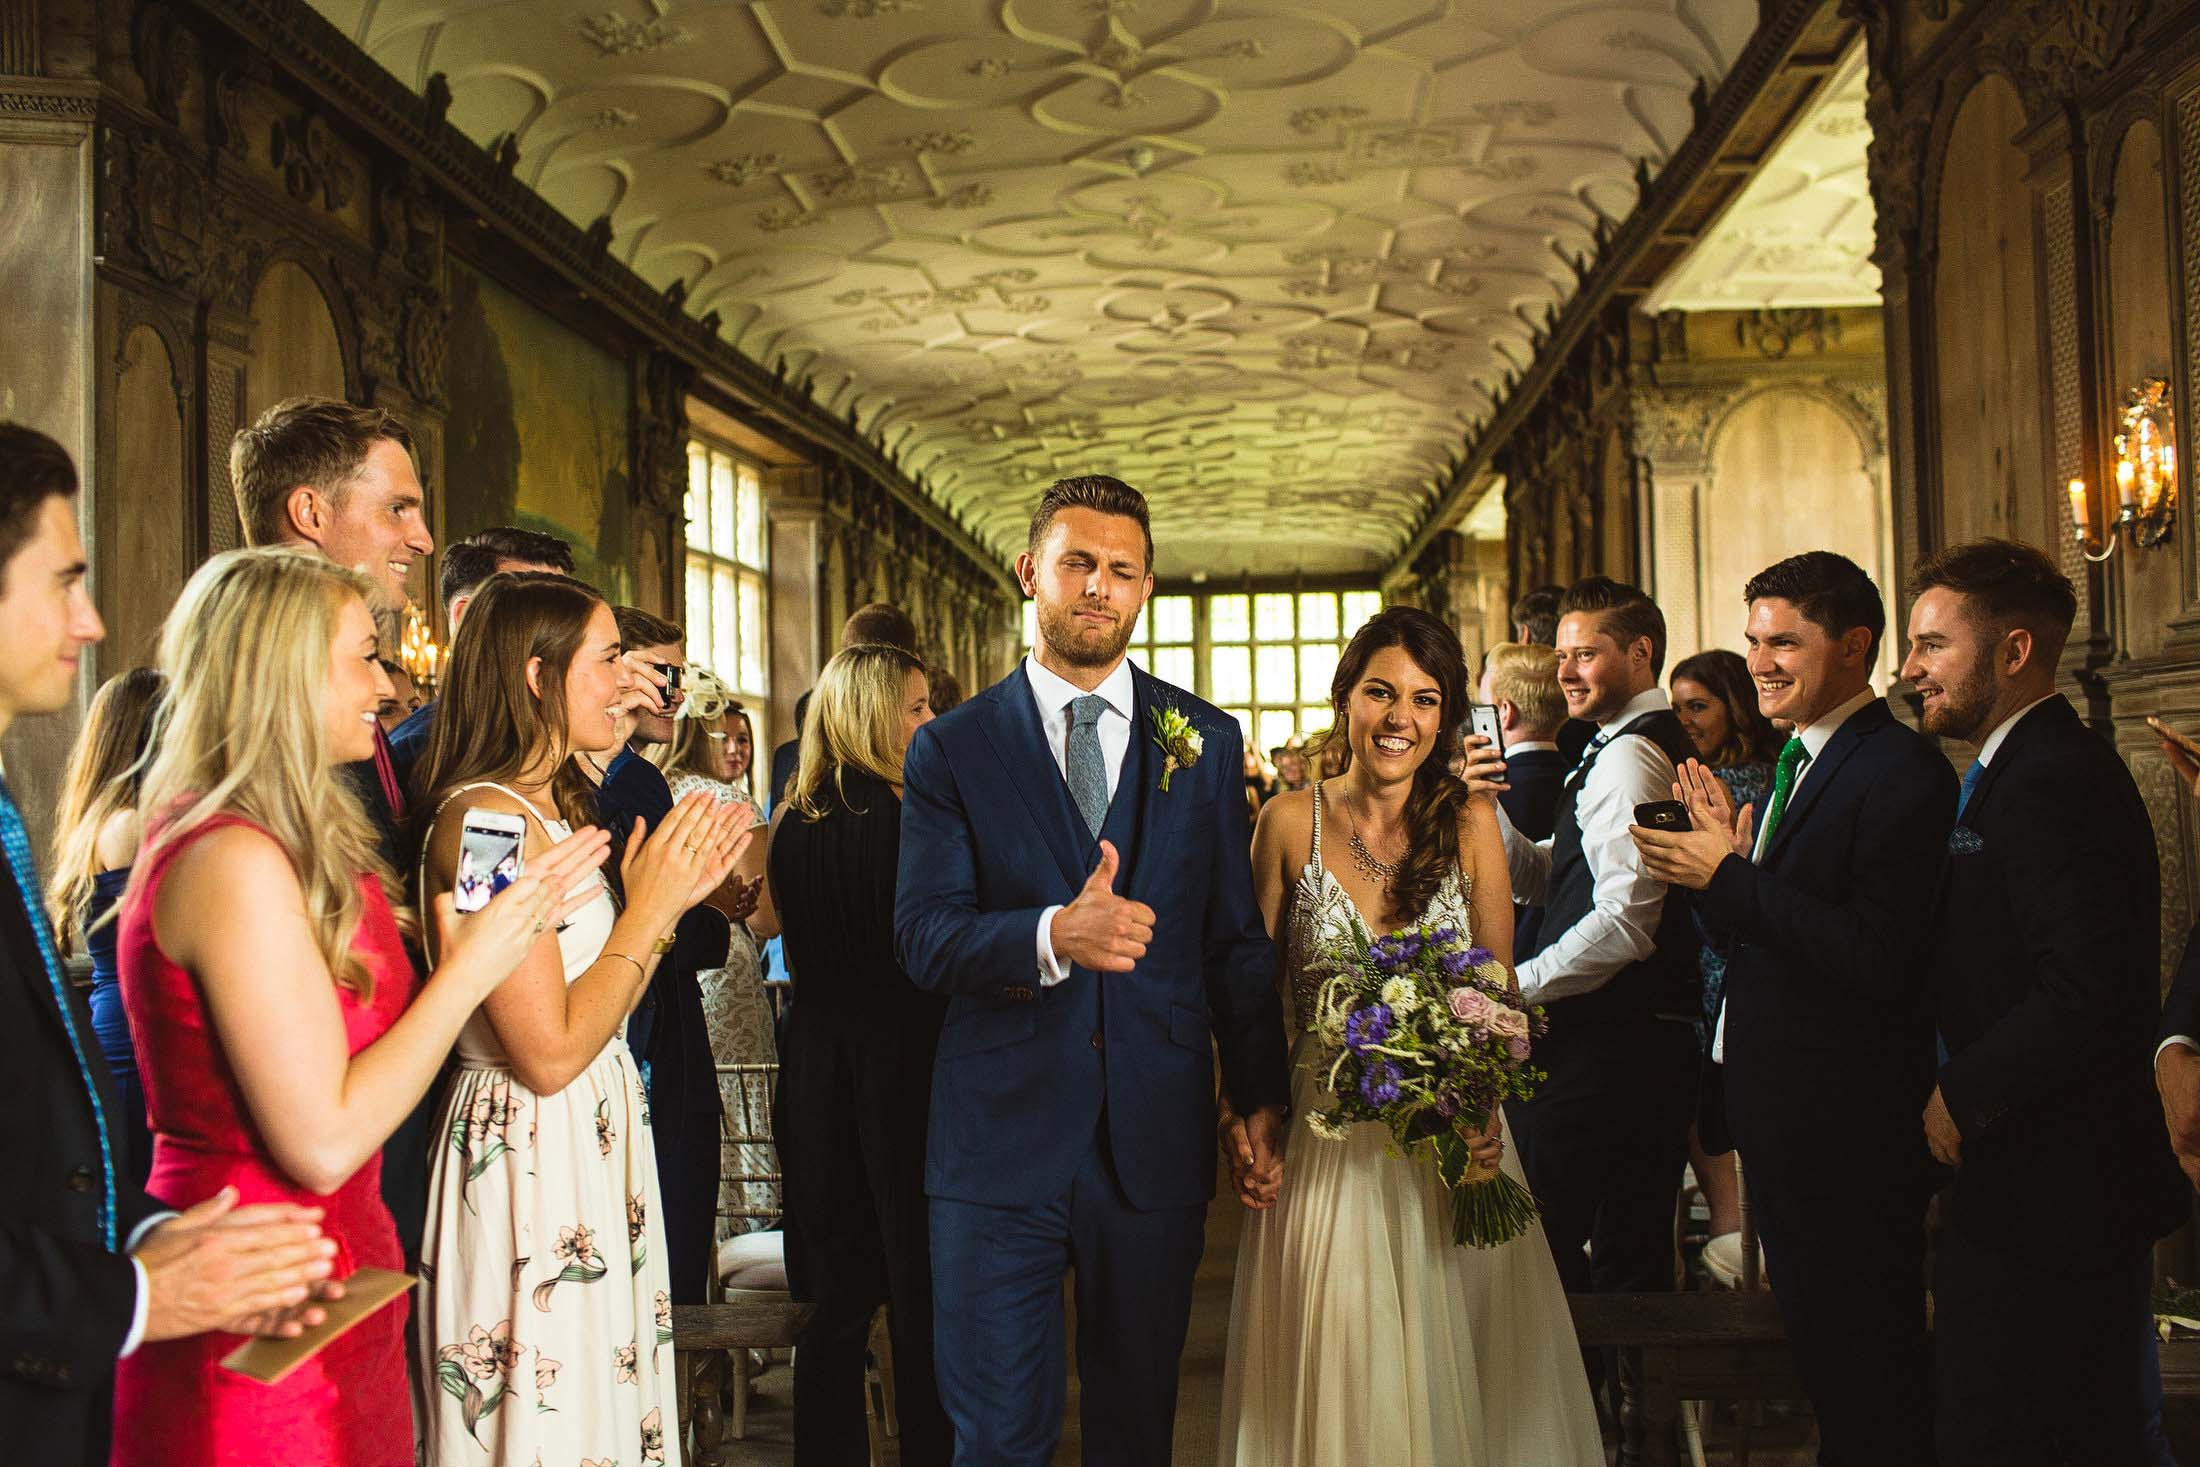 haddon hall wedding